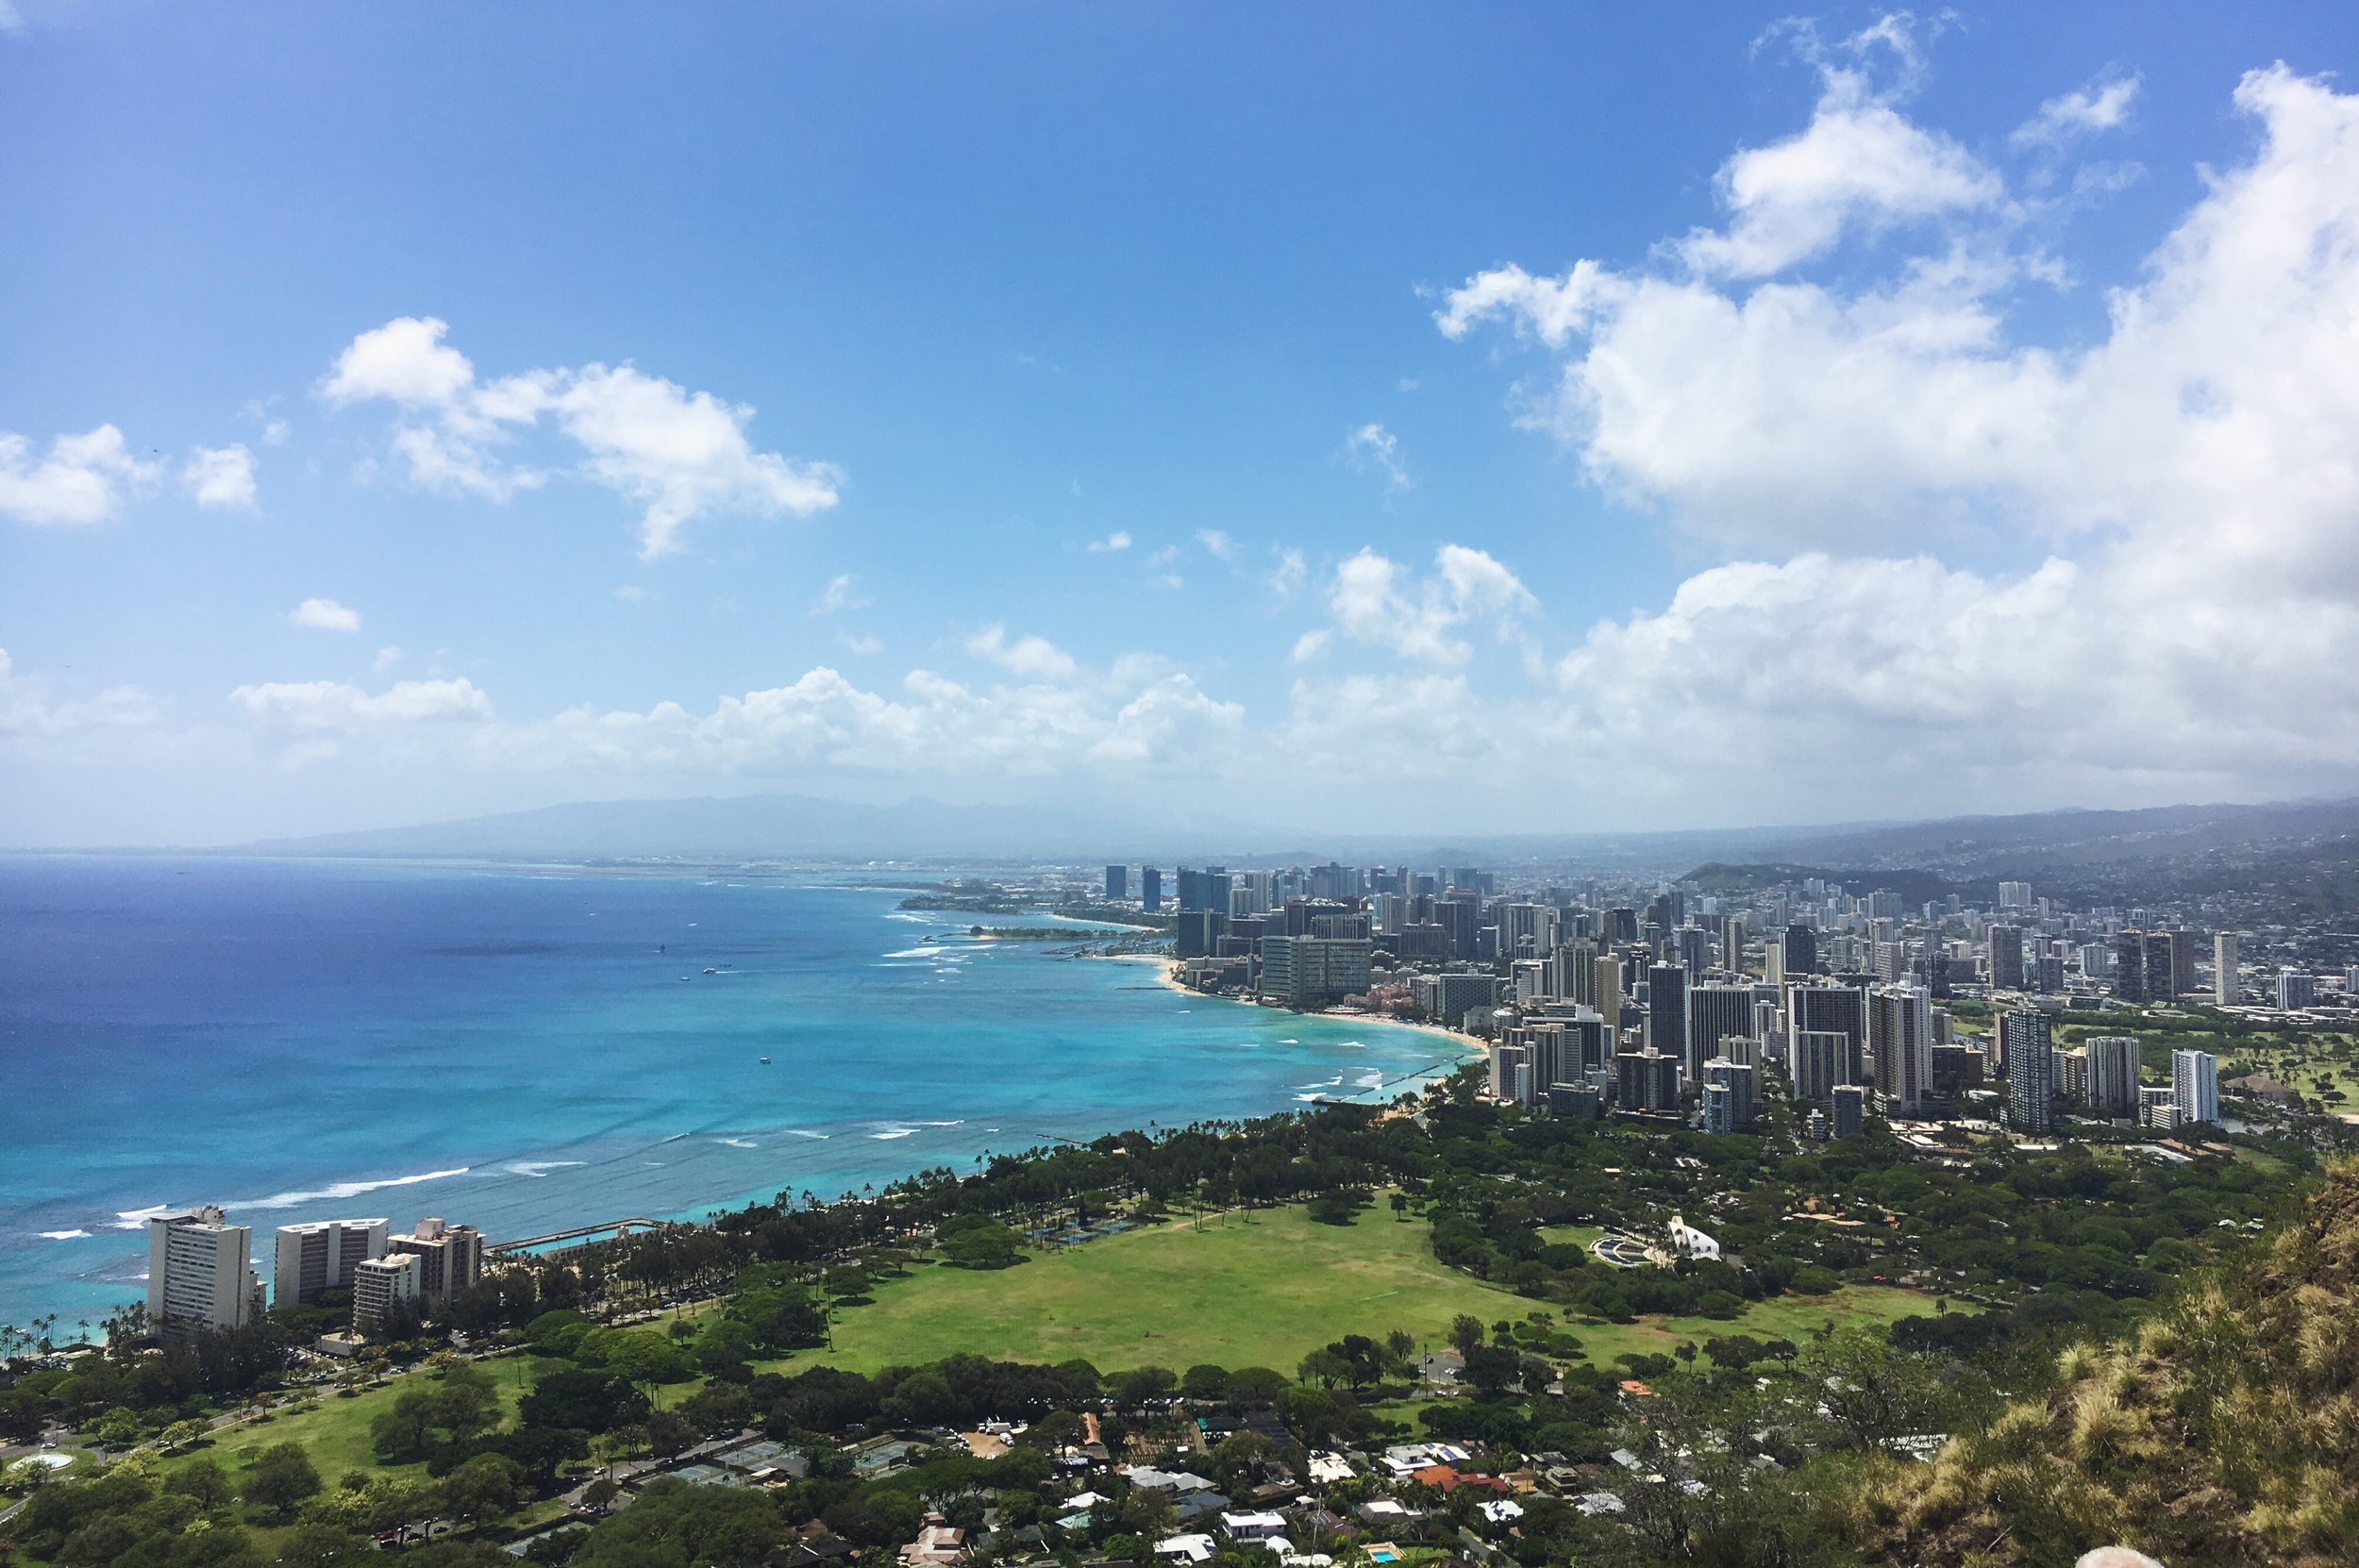 A view of Wakiki from the top of the Diamond Head hike